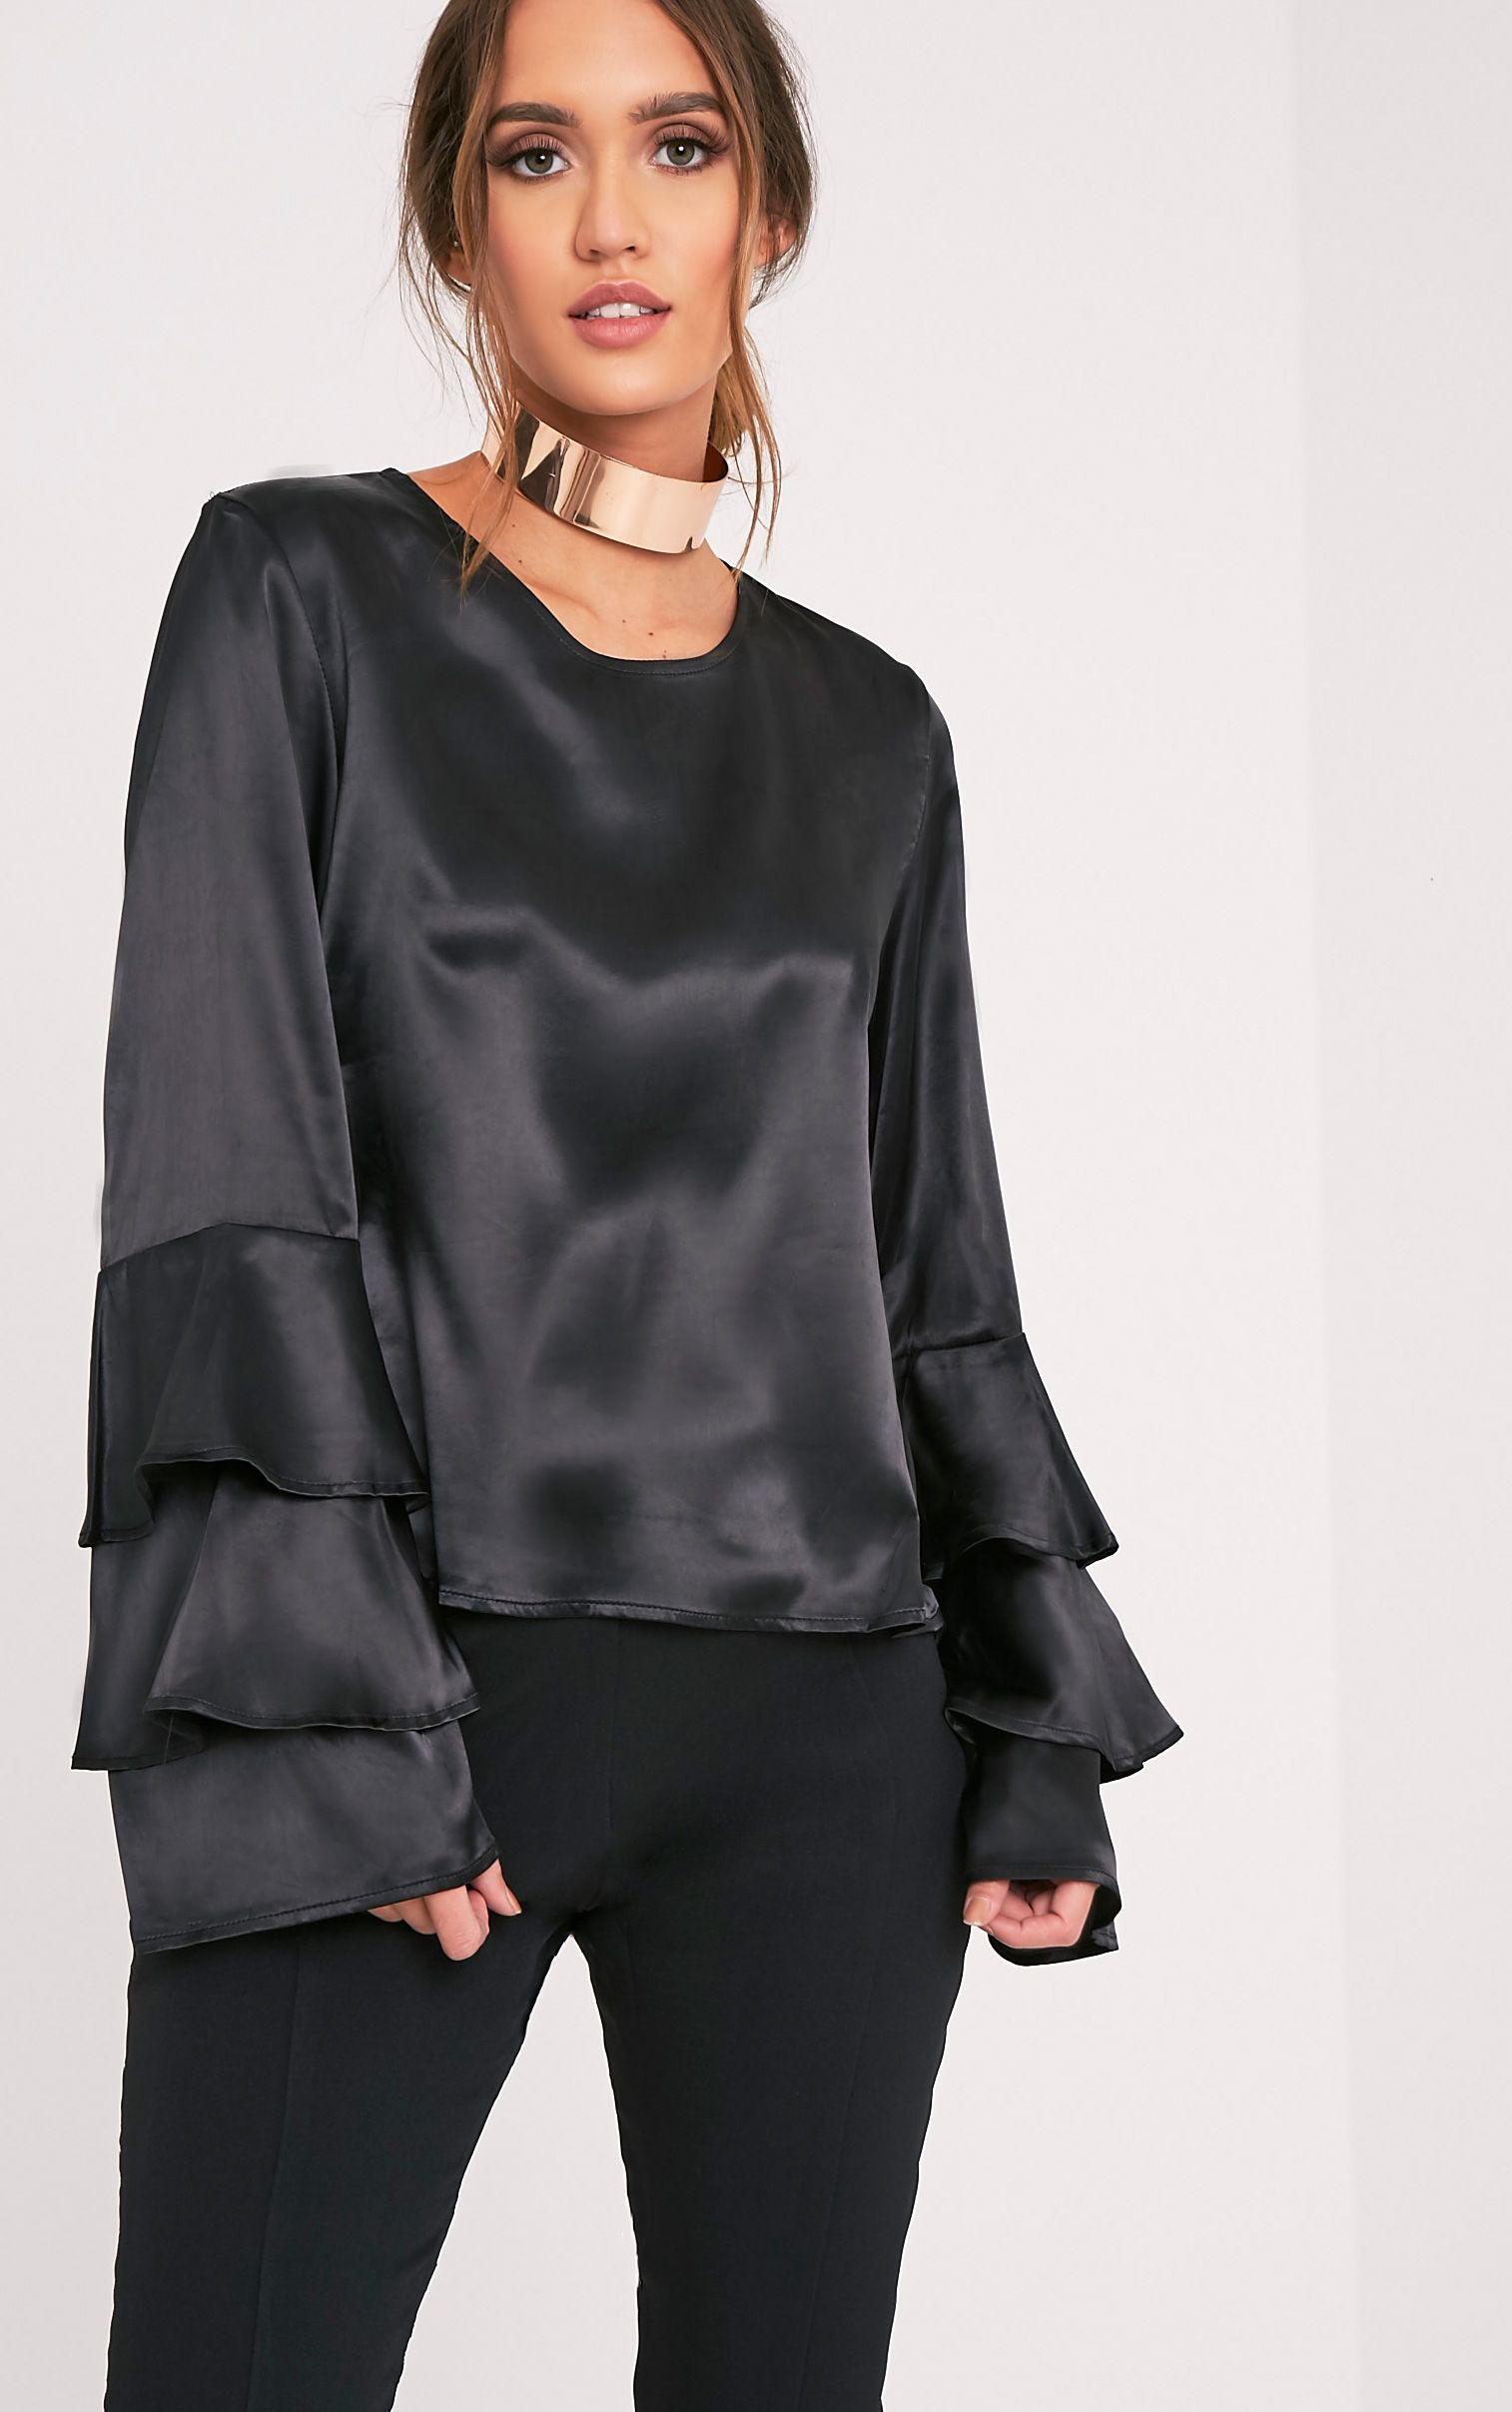 Layle Black Frill Sleeve Woven Blouse